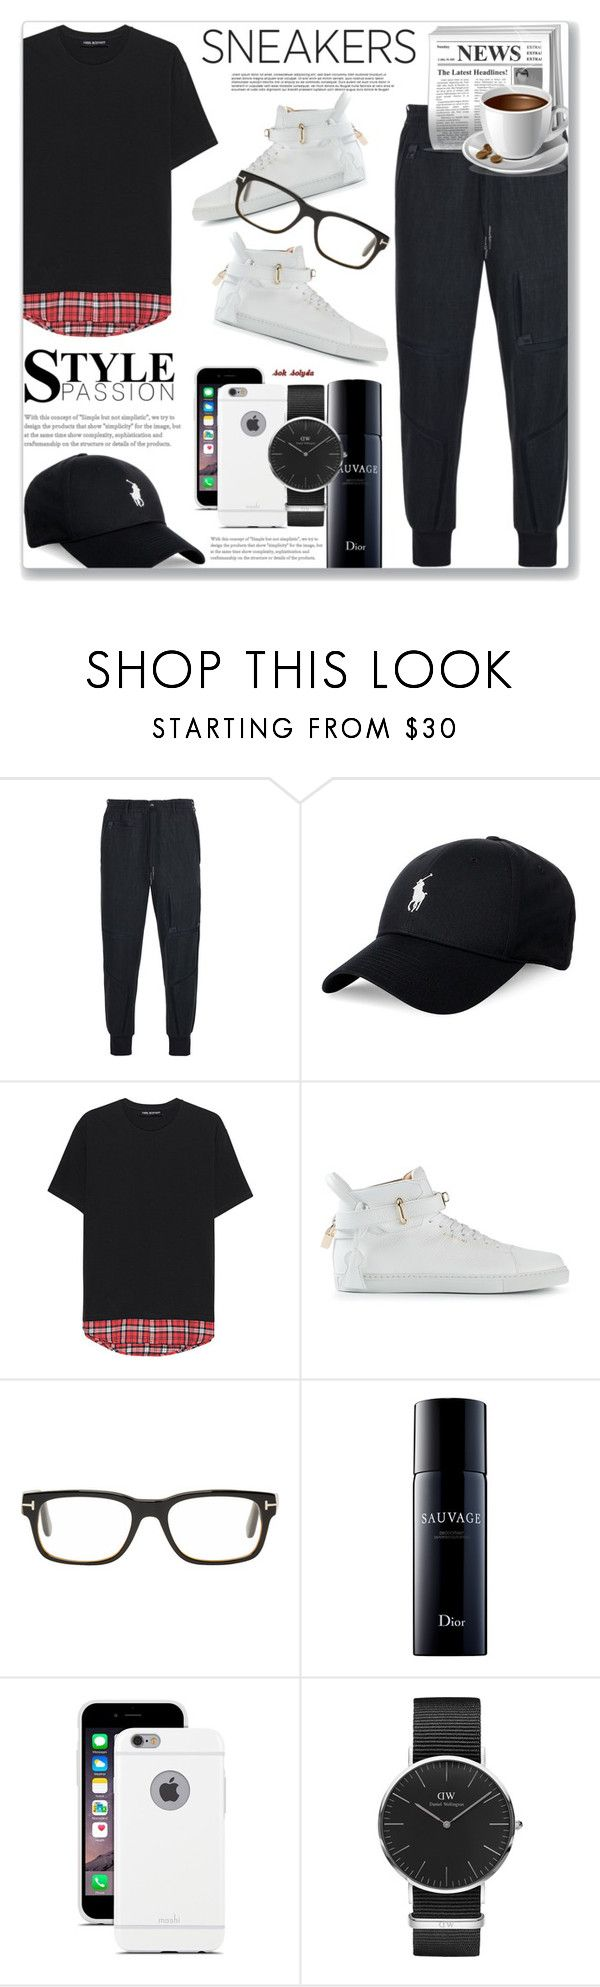 """""""#49 So Fresh - White Sneakers: 29/08/17"""" by solyda-sok ❤ liked on Polyvore featuring Y-3, Polo Ralph Lauren, Neil Barrett, BUSCEMI, Tom Ford, Sephora Collection, Moshi, Daniel Wellington, men's fashion and menswear"""